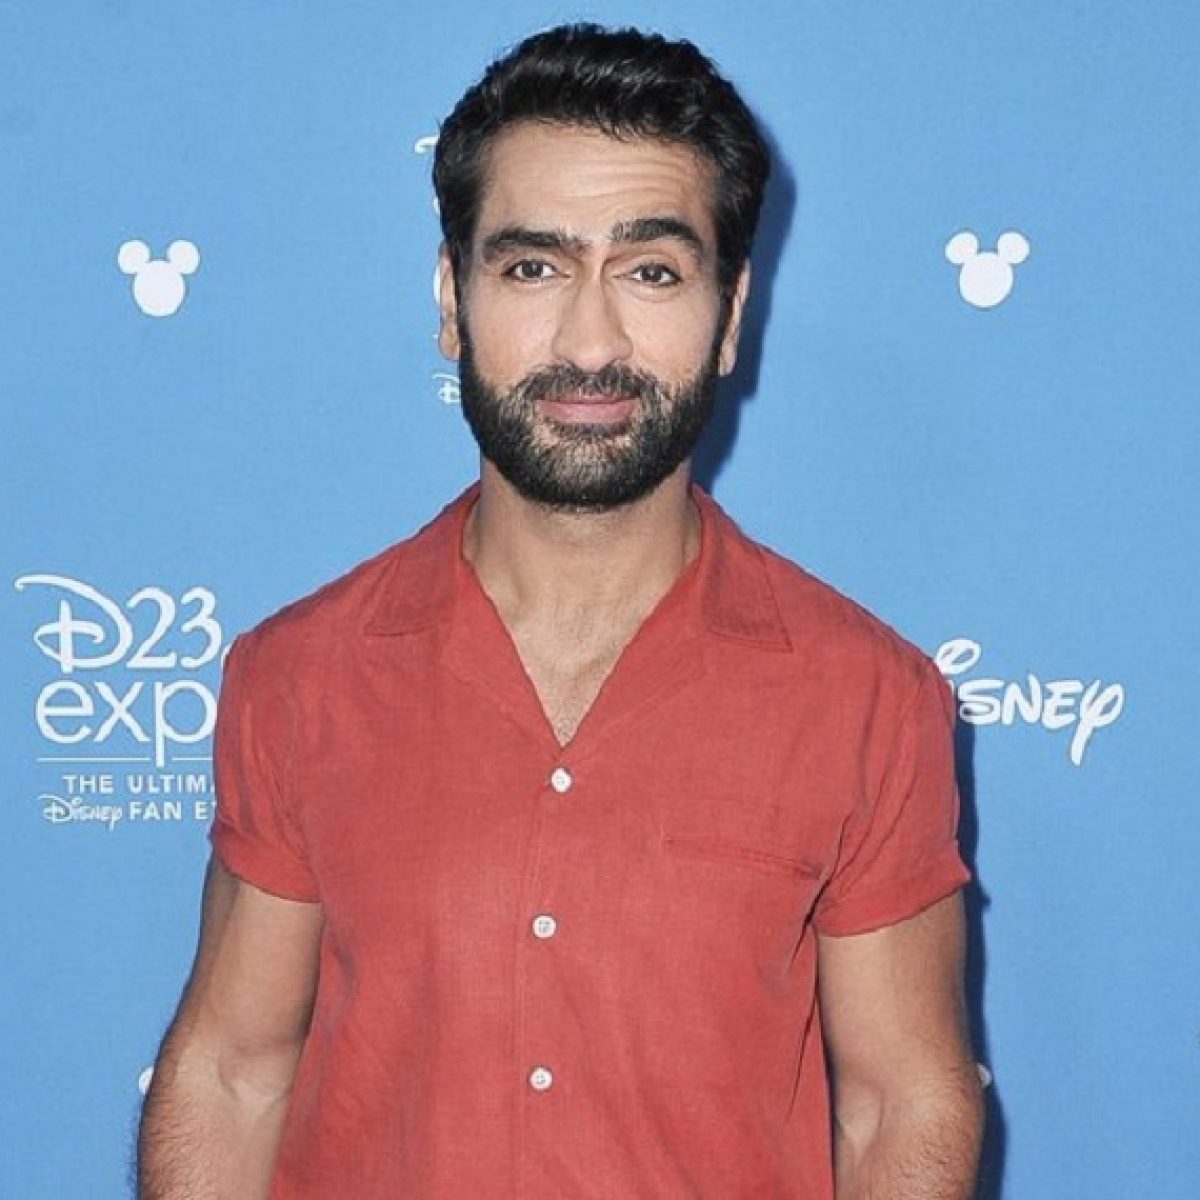 Kumail Nanjiani criticises Ricky Gervais' comedy for 'normalising harmful ideas'